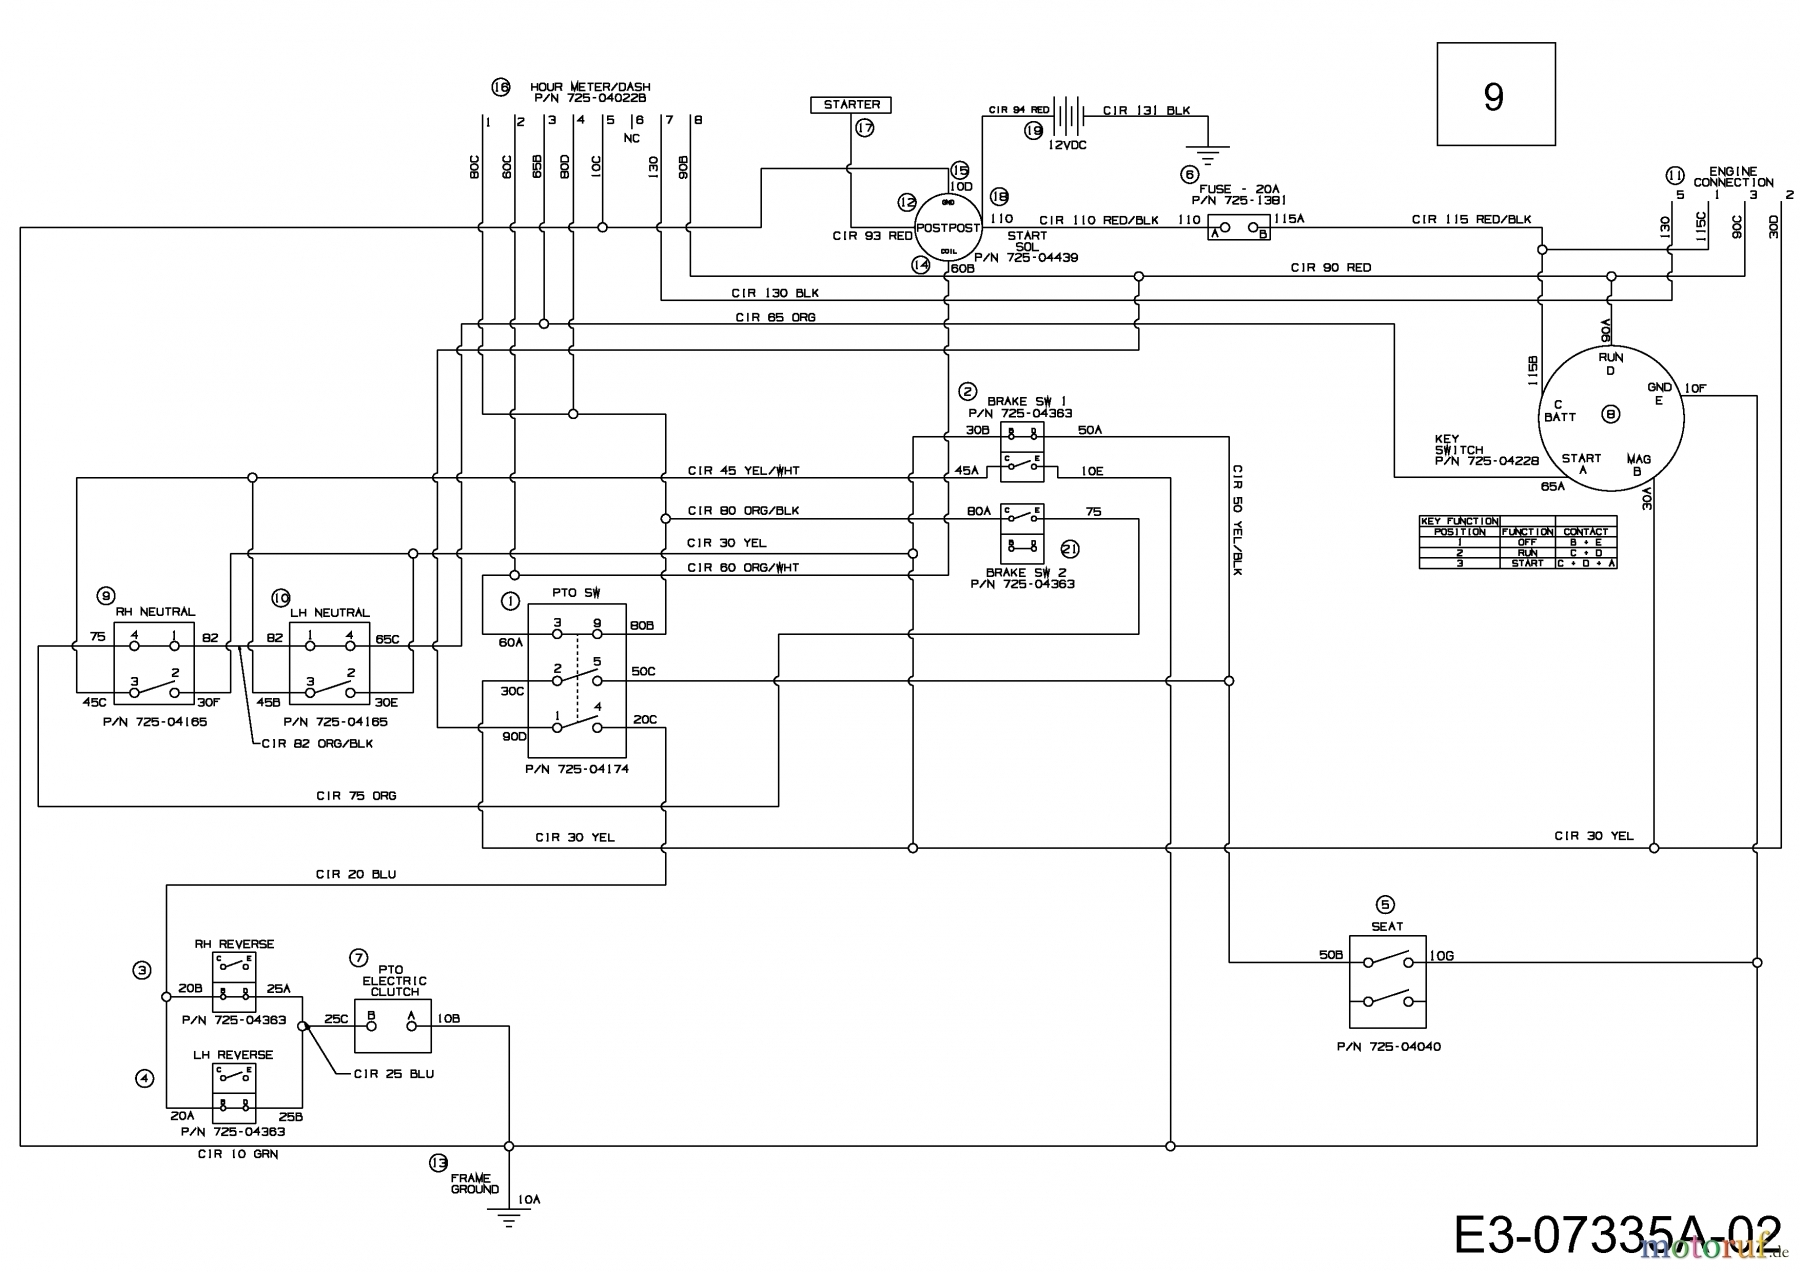 Wiring Diagram For A Cub Cadet Rzt 54